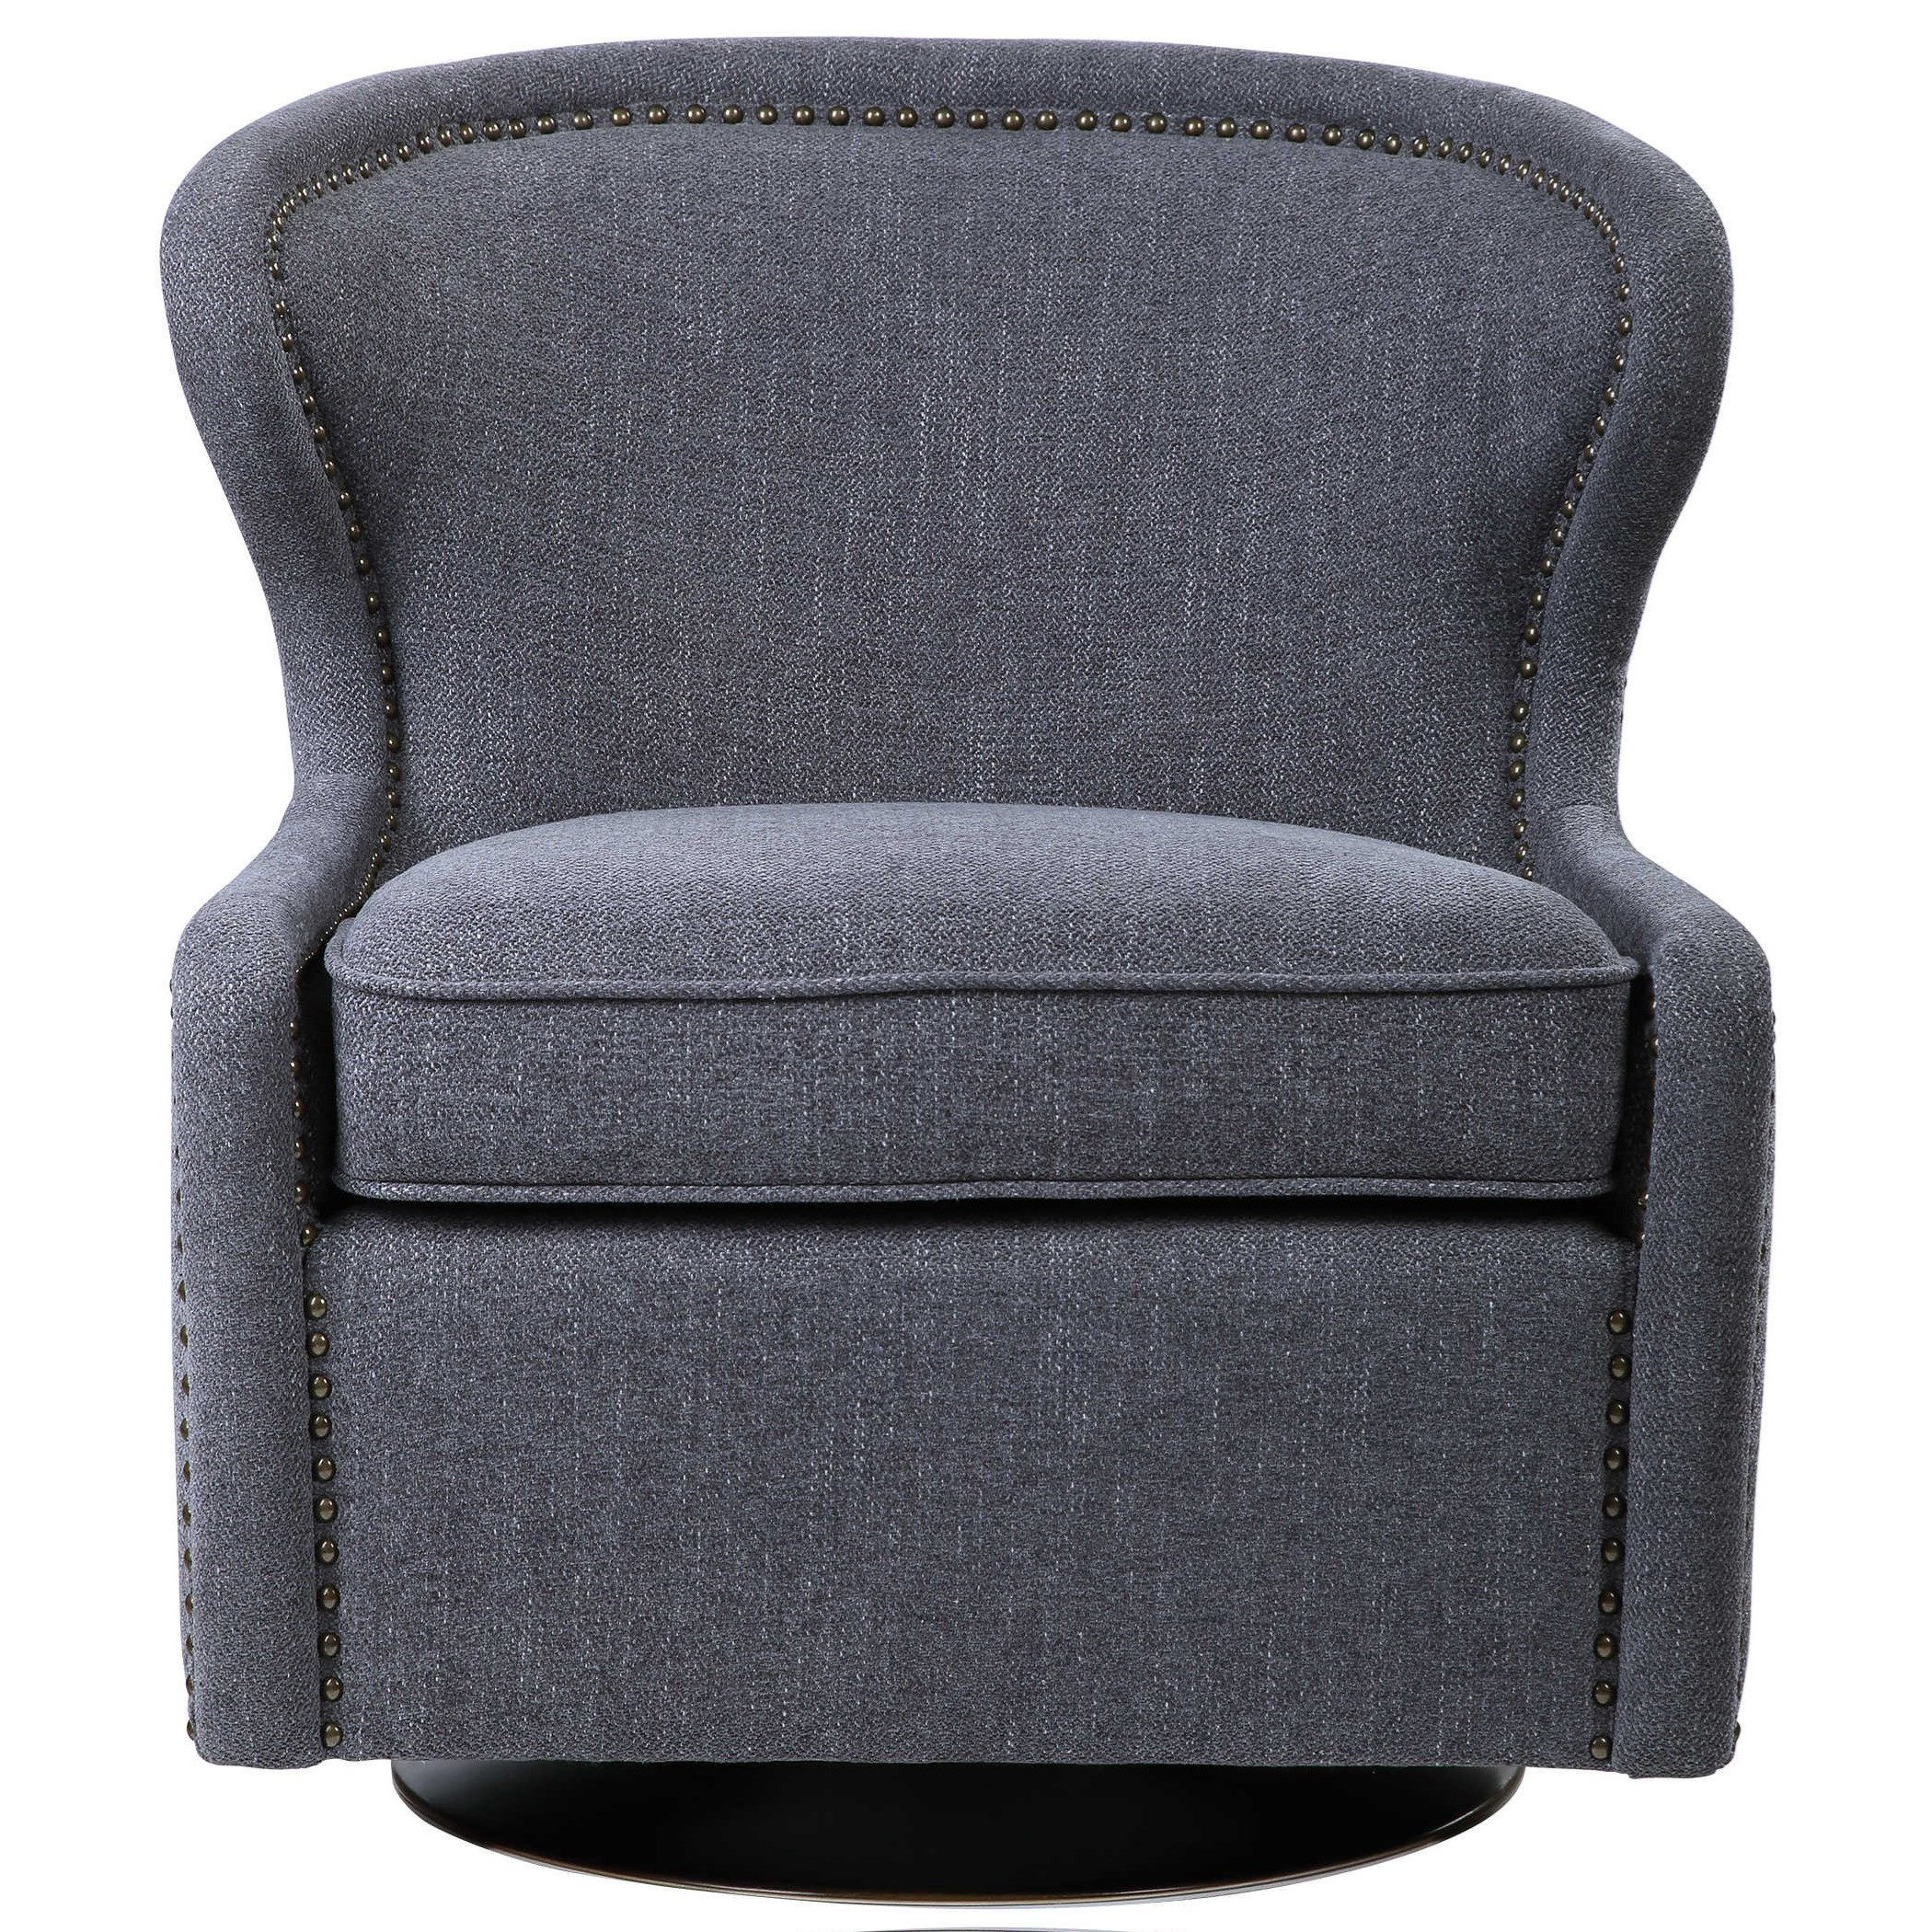 Accent Furniture - Accent Chairs Biscay Swivel Chair by Uttermost at Michael Alan Furniture & Design